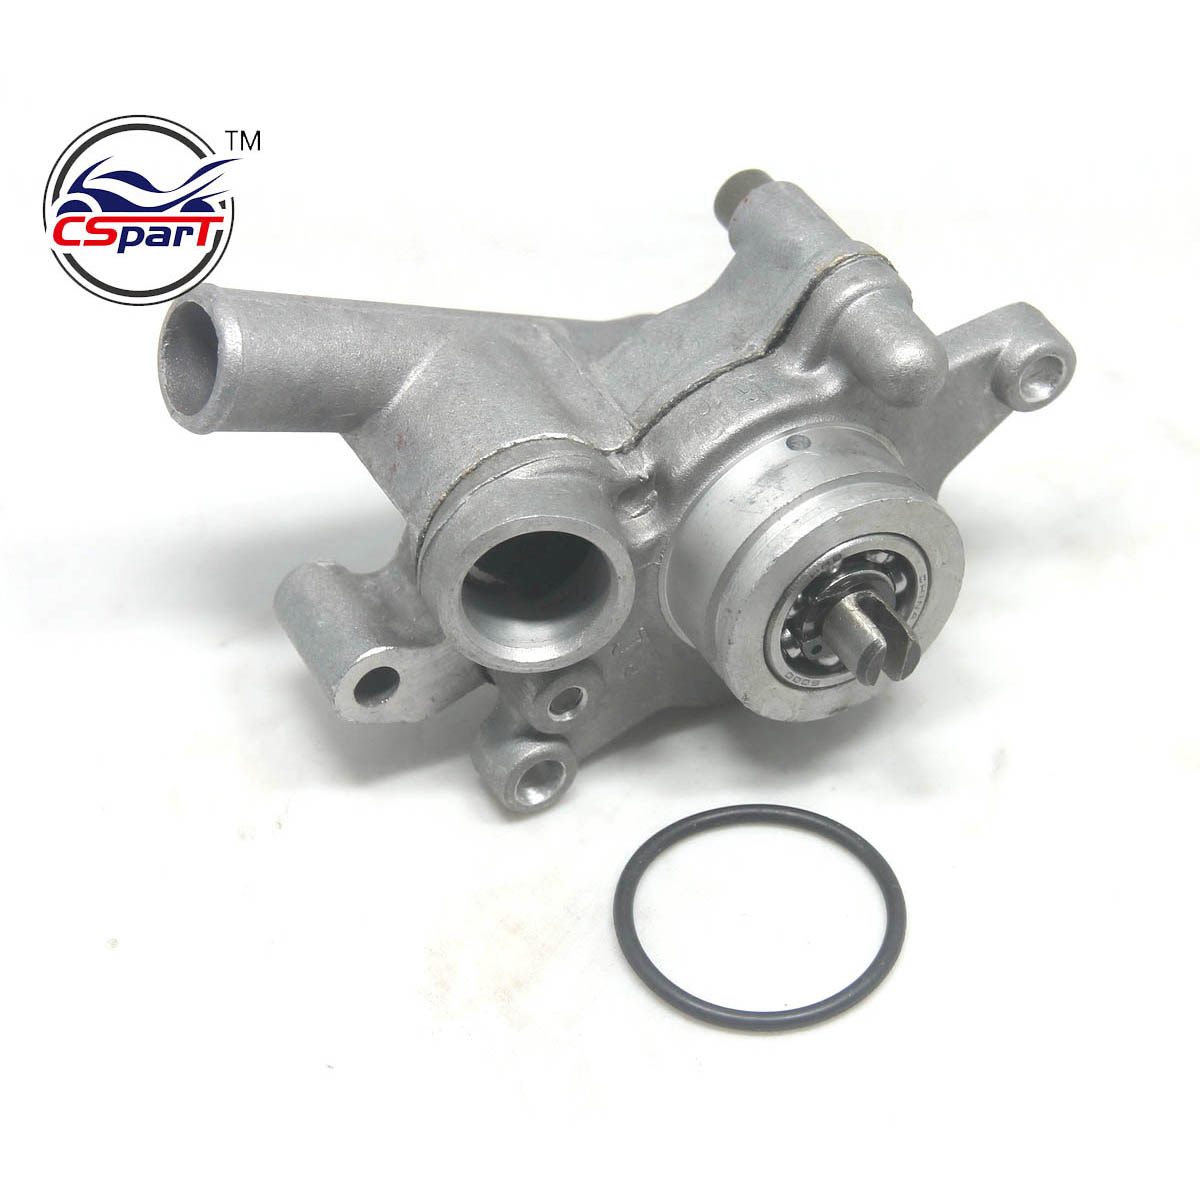 LINHAI BUYANG LH250 LH260 LH300 LH400 250CC 260CC 300CC 400CC ATV QUAD Water Pump With Seal Ring